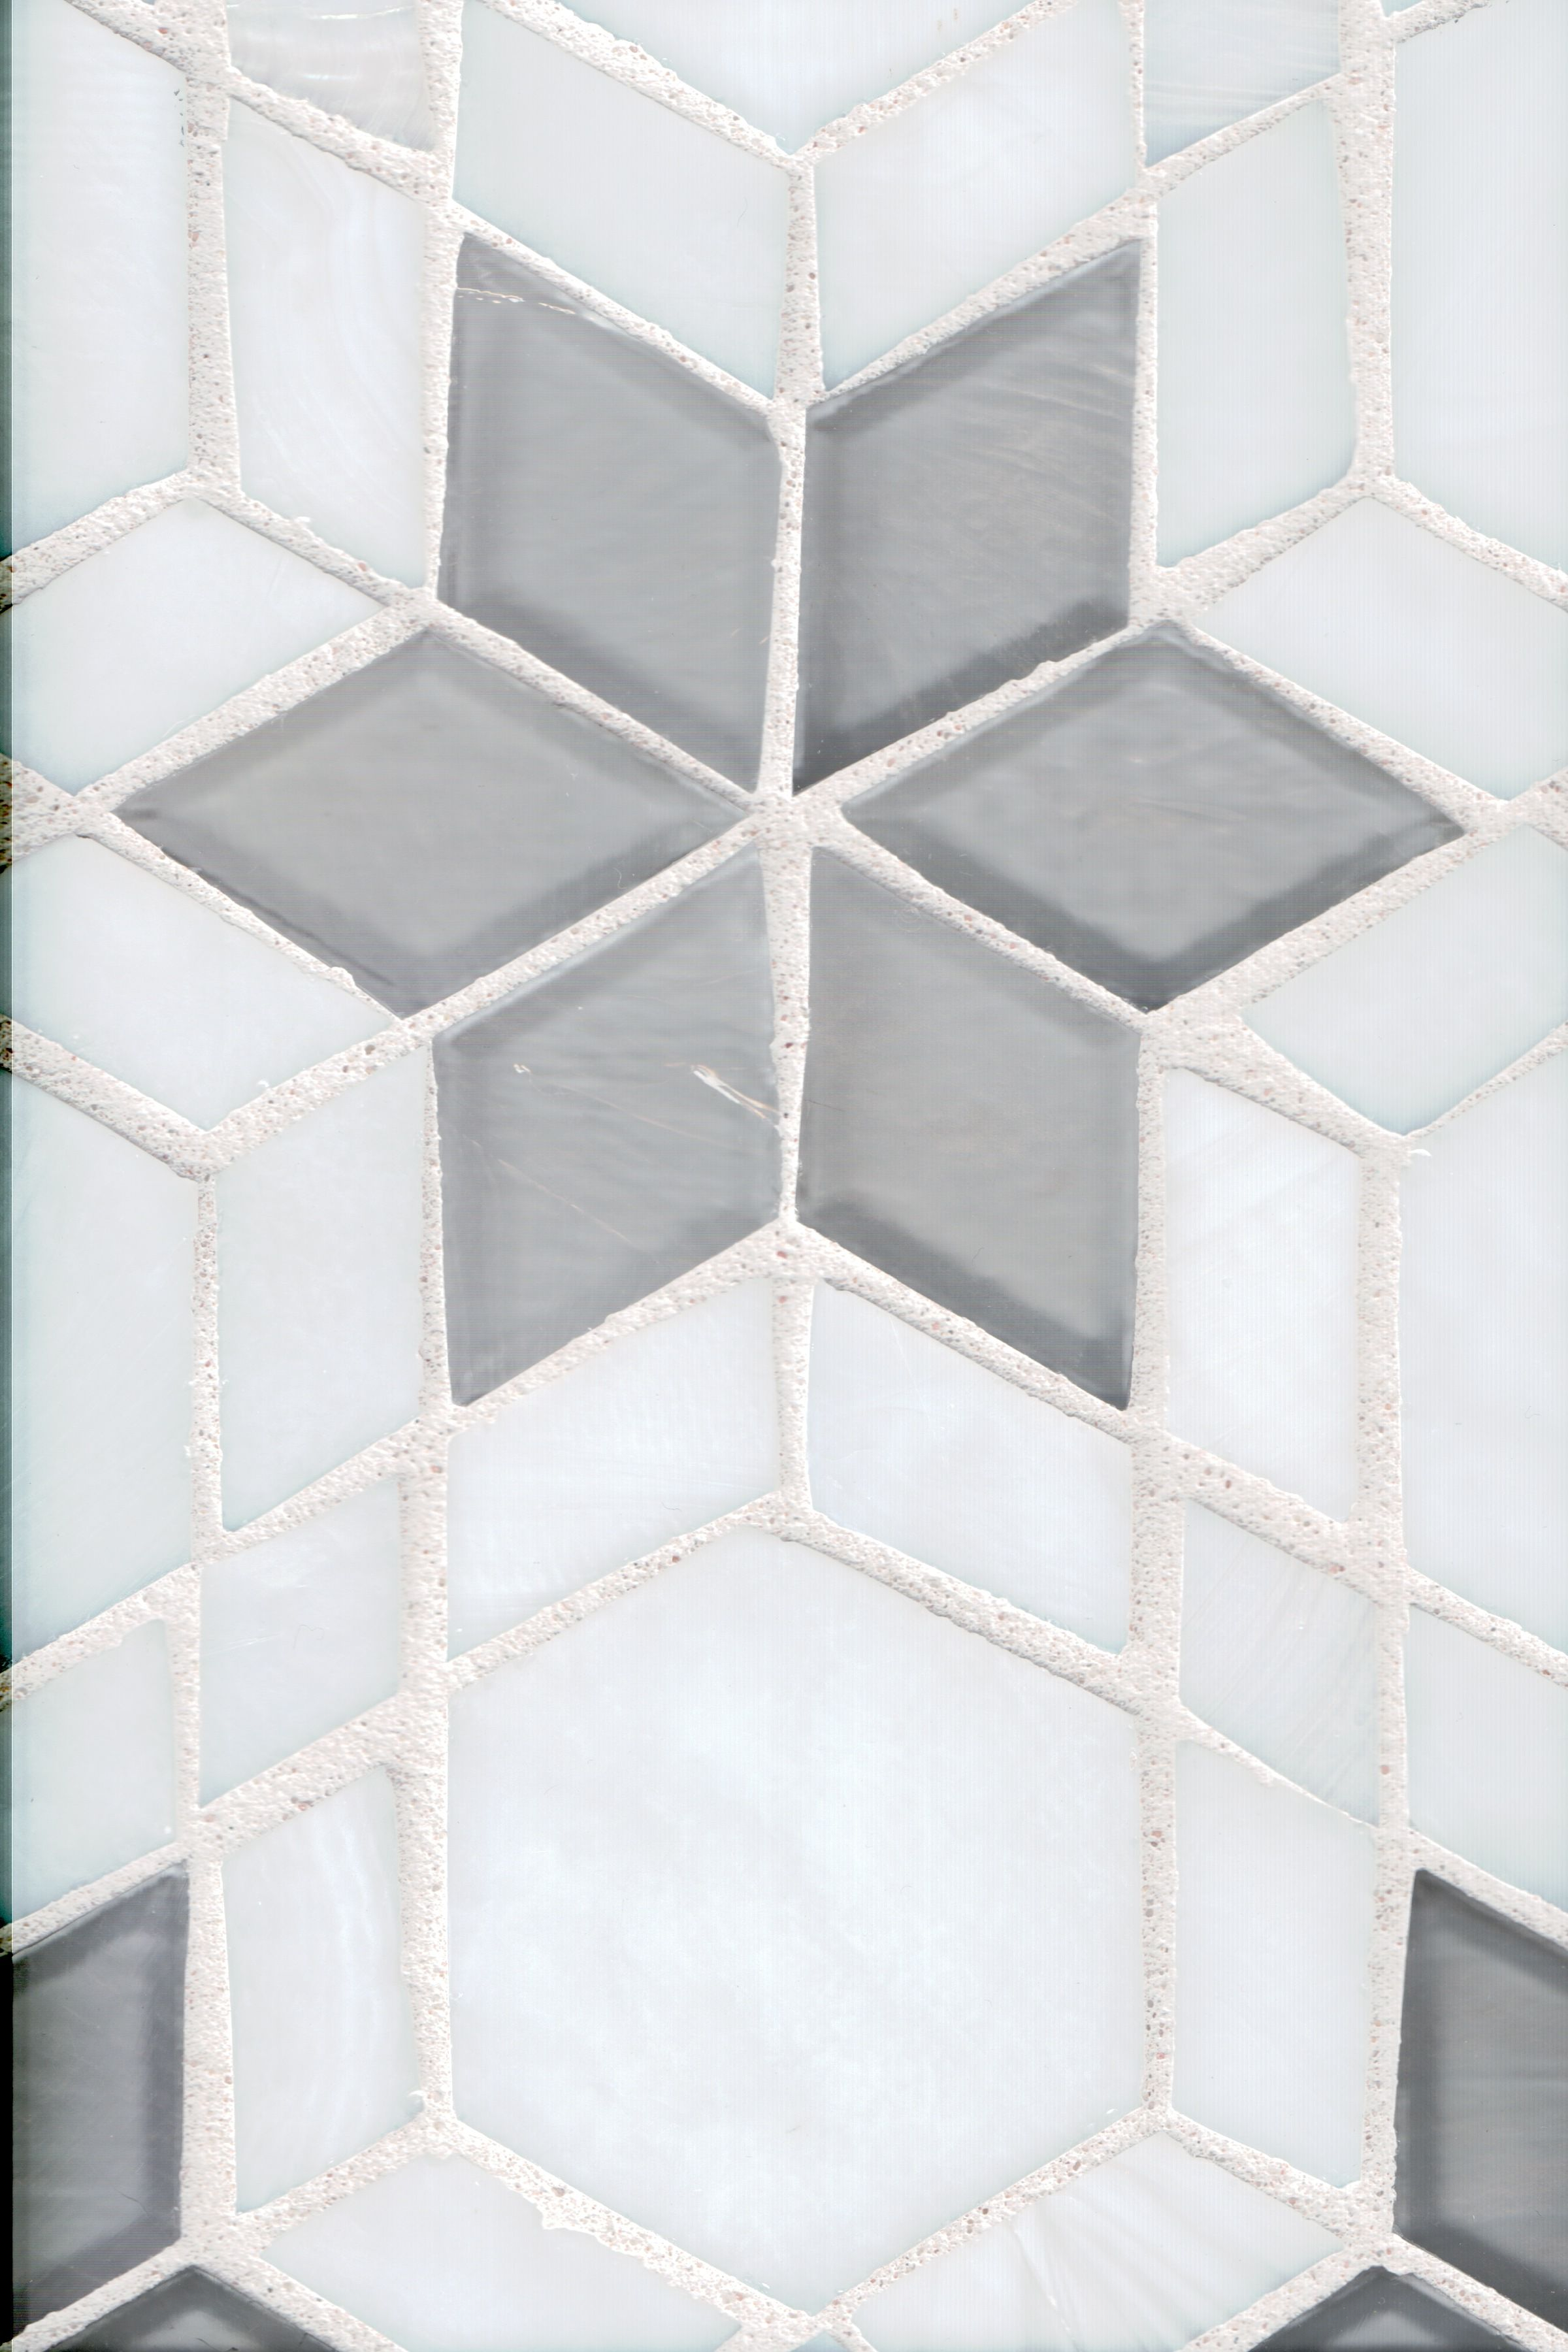 Fez Hexagon Blend White And Grey Gl Tile Available At World Mosaic In Vancouver